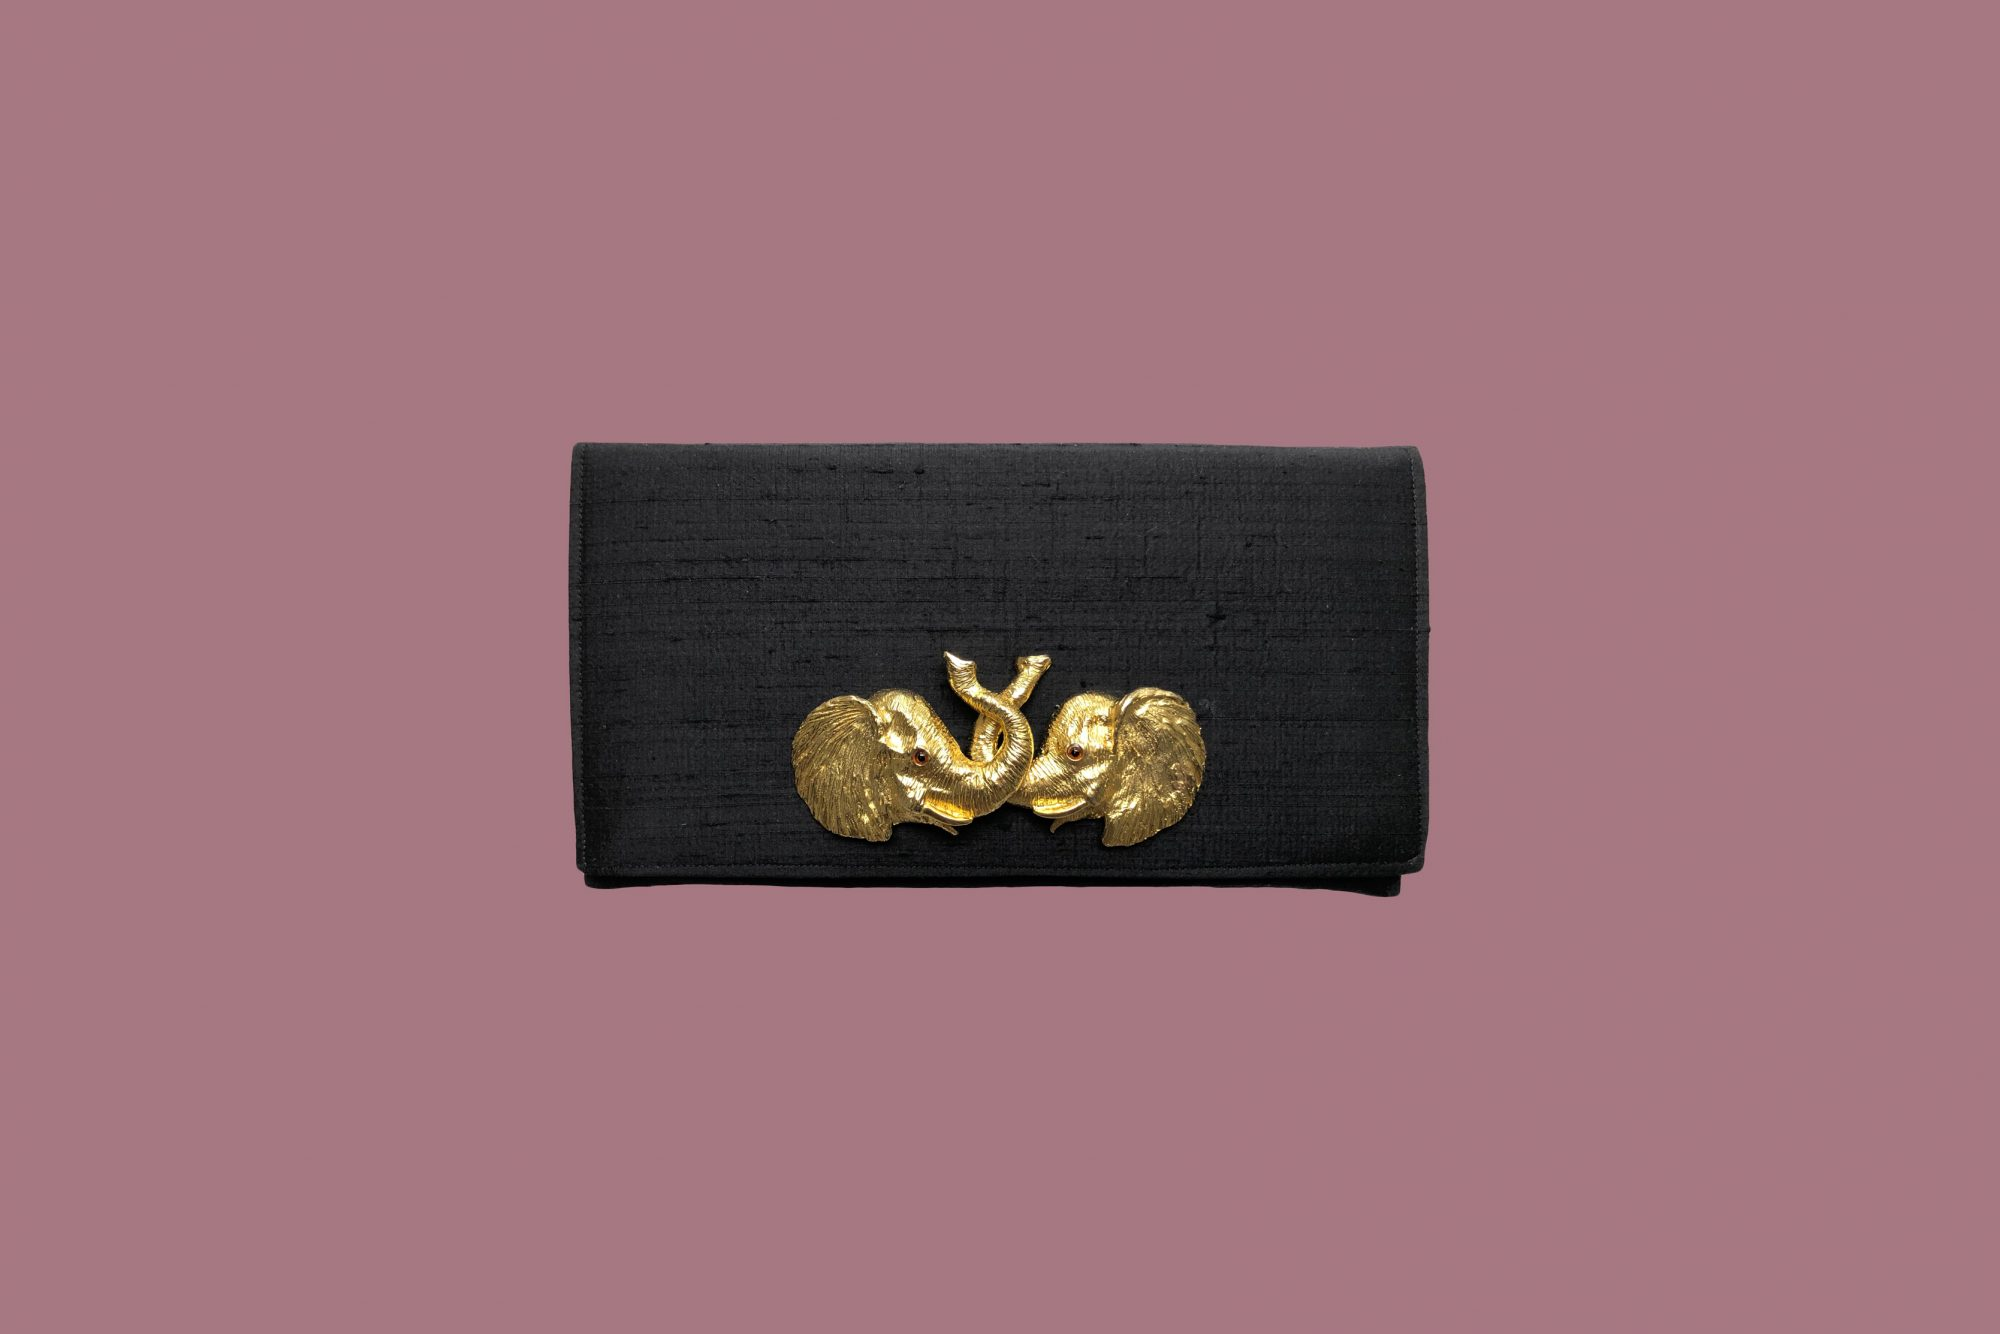 garland bags black clutch with gold elephants